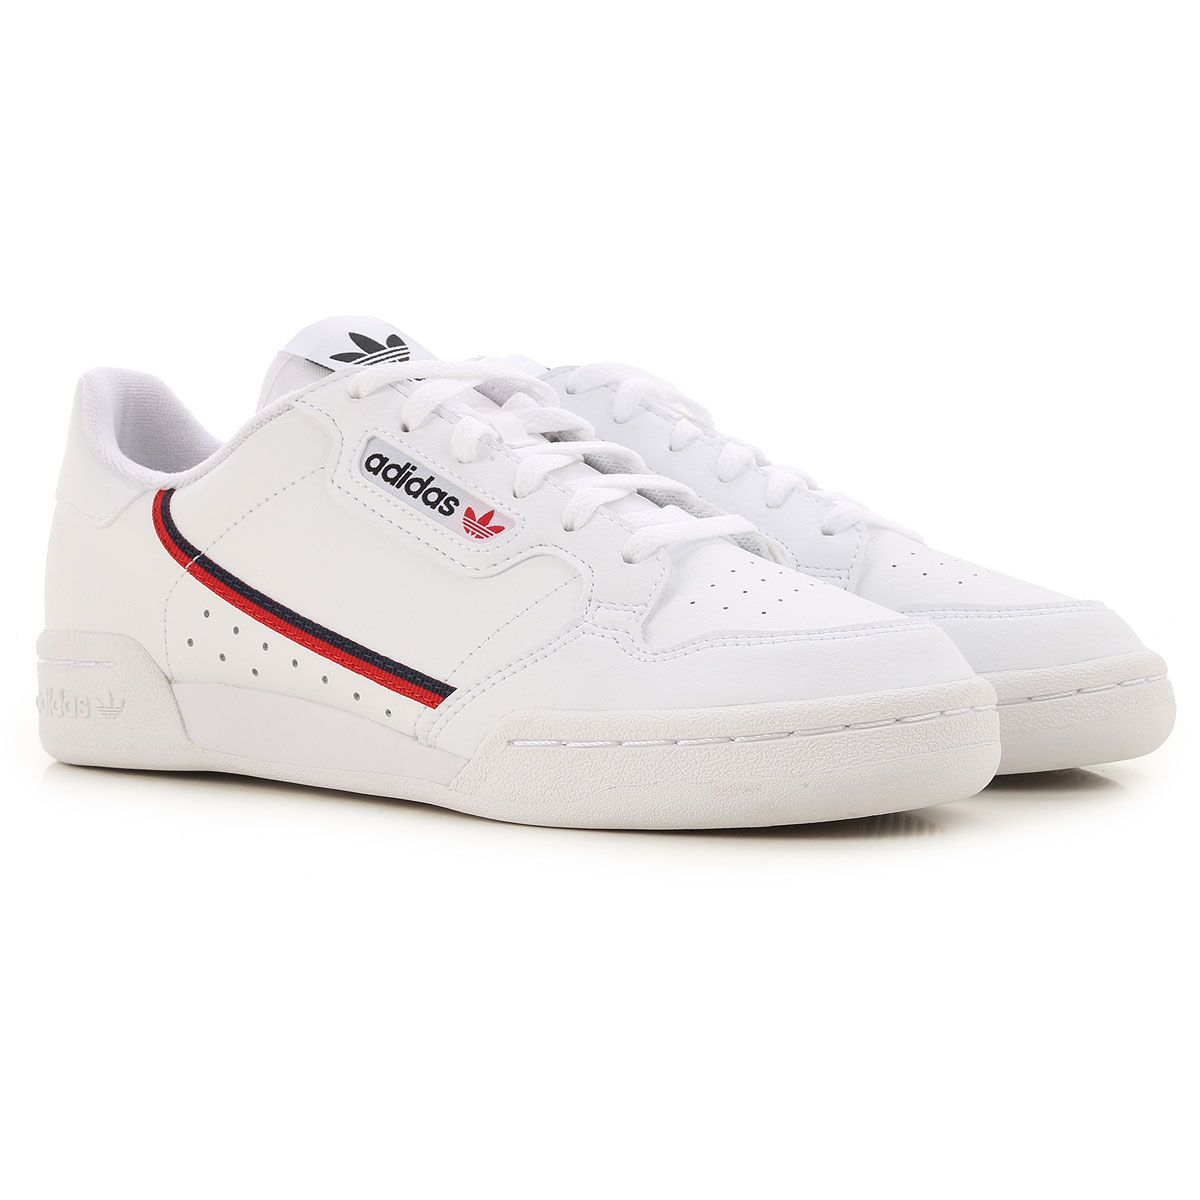 Adidas Kids Shoes for Boys On Sale